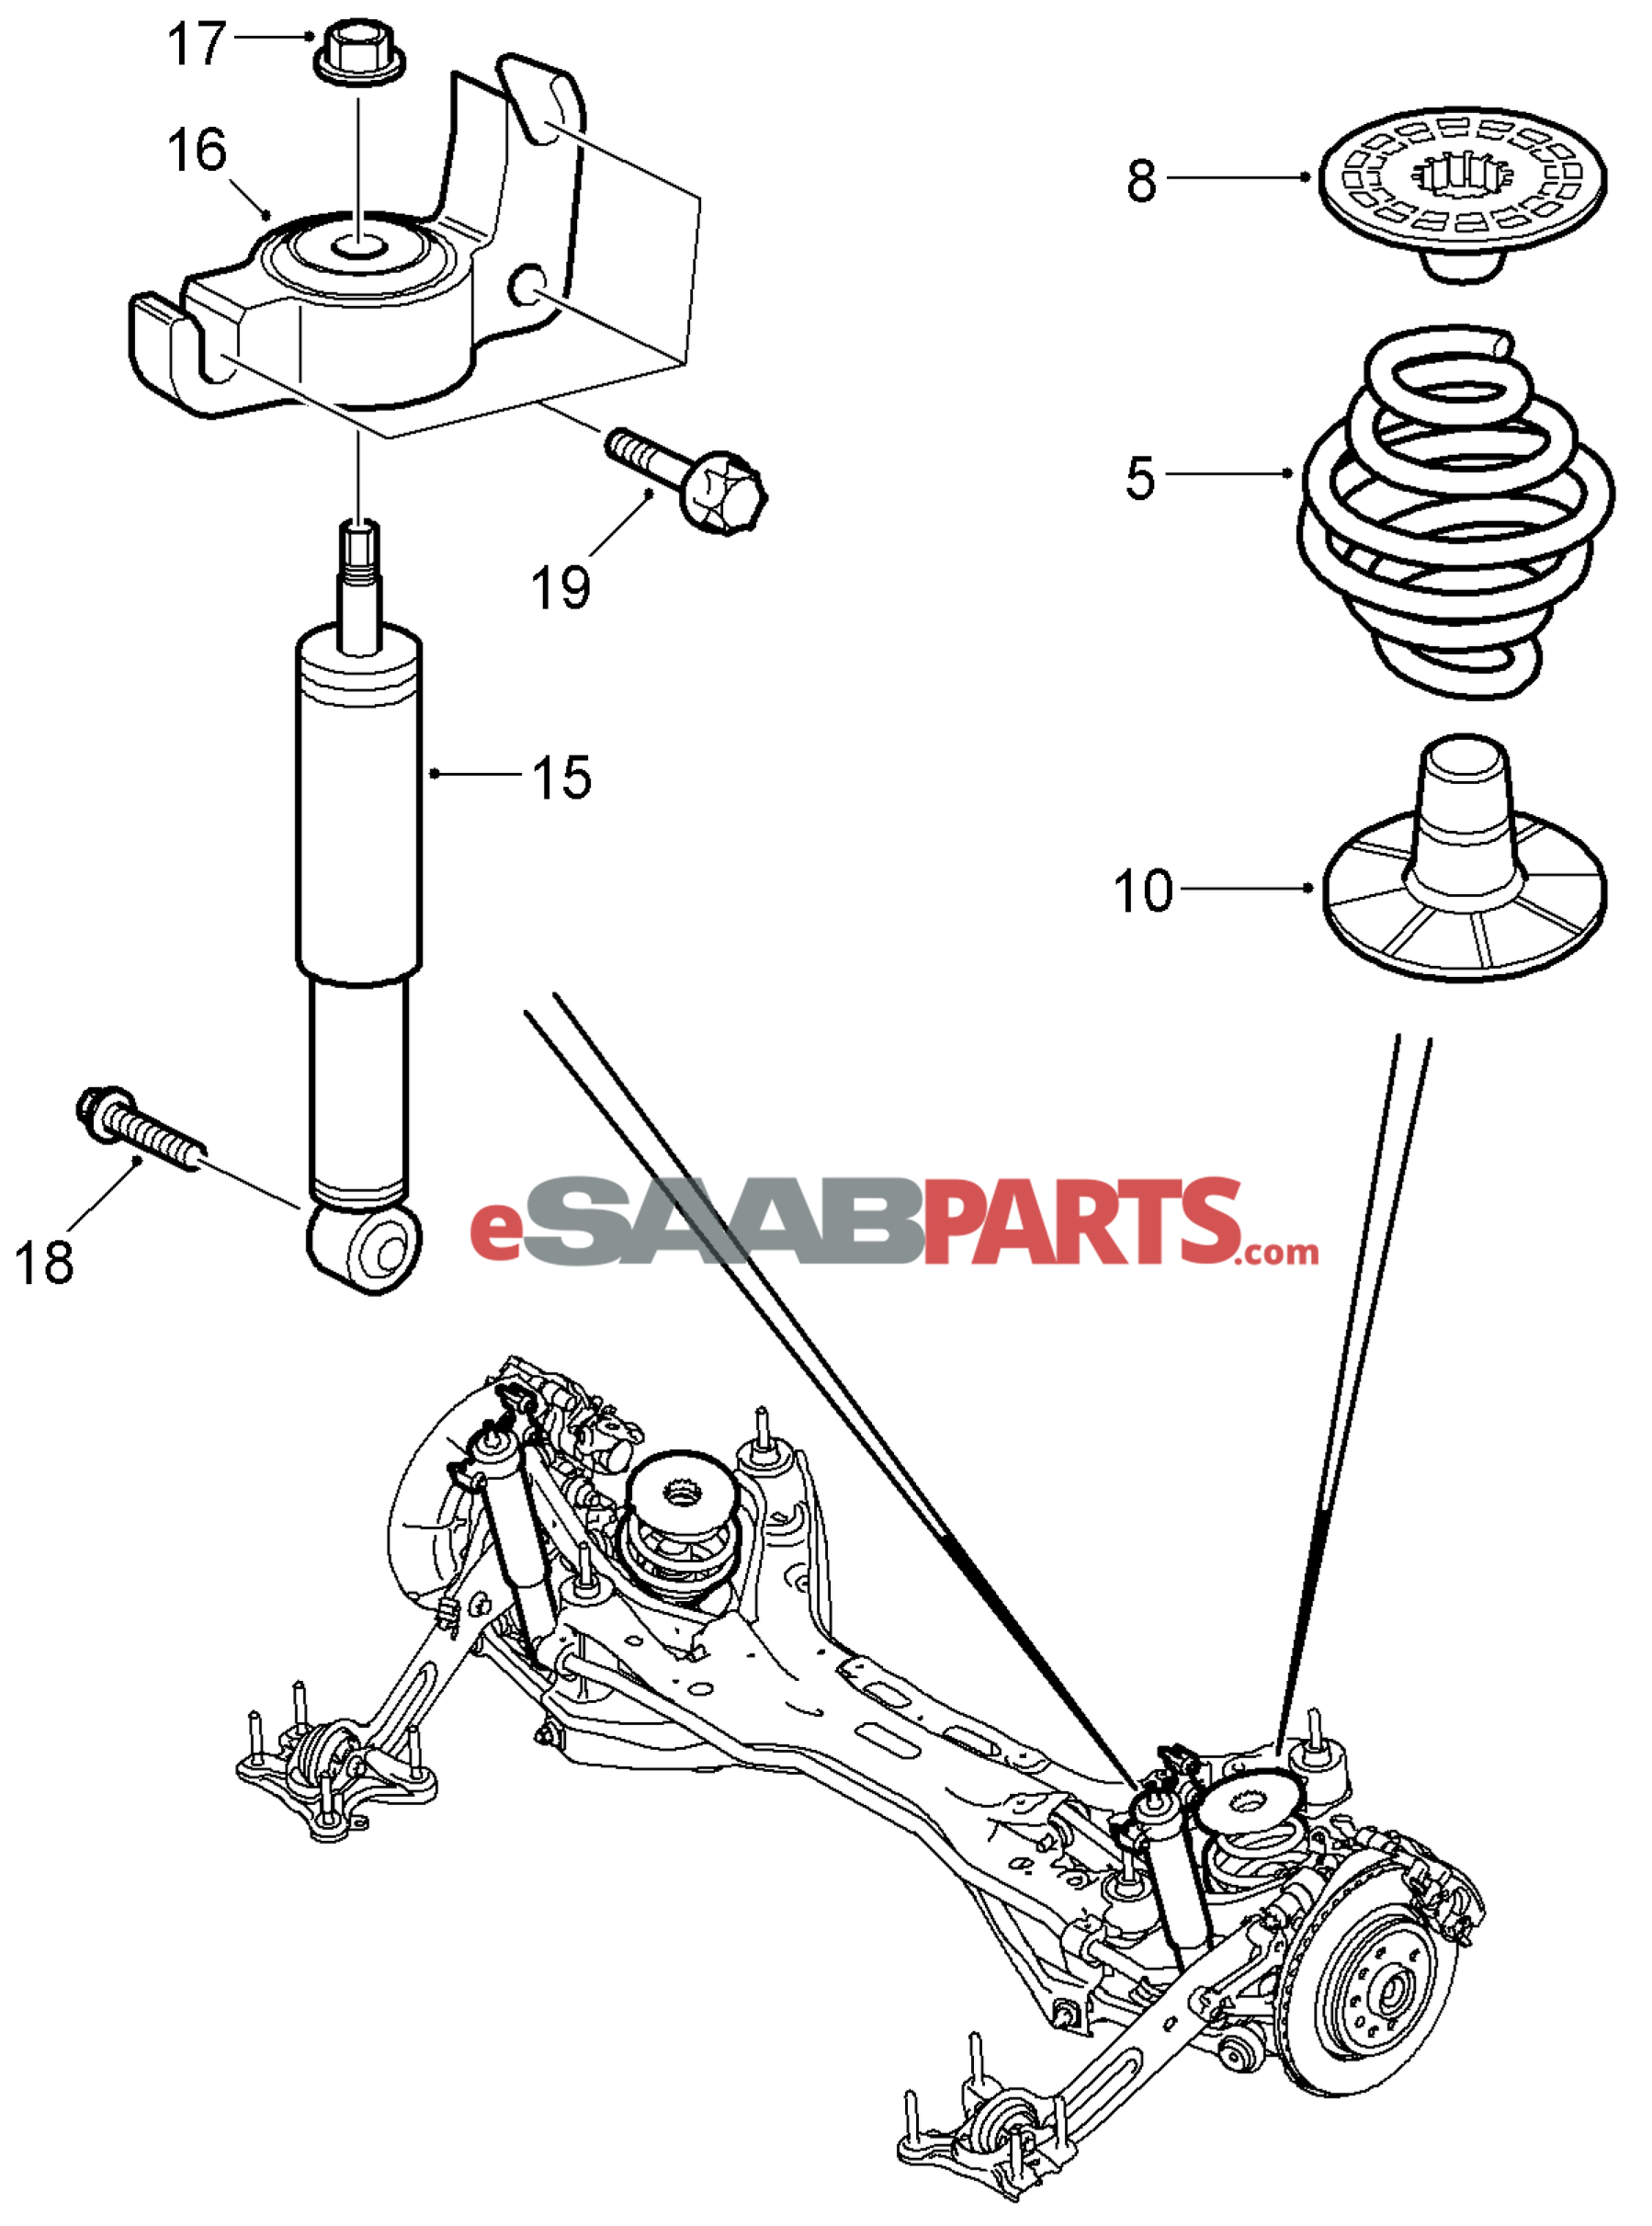 [DIAGRAM] Saab 9 3 Petrol And Diesel Owners Workshop